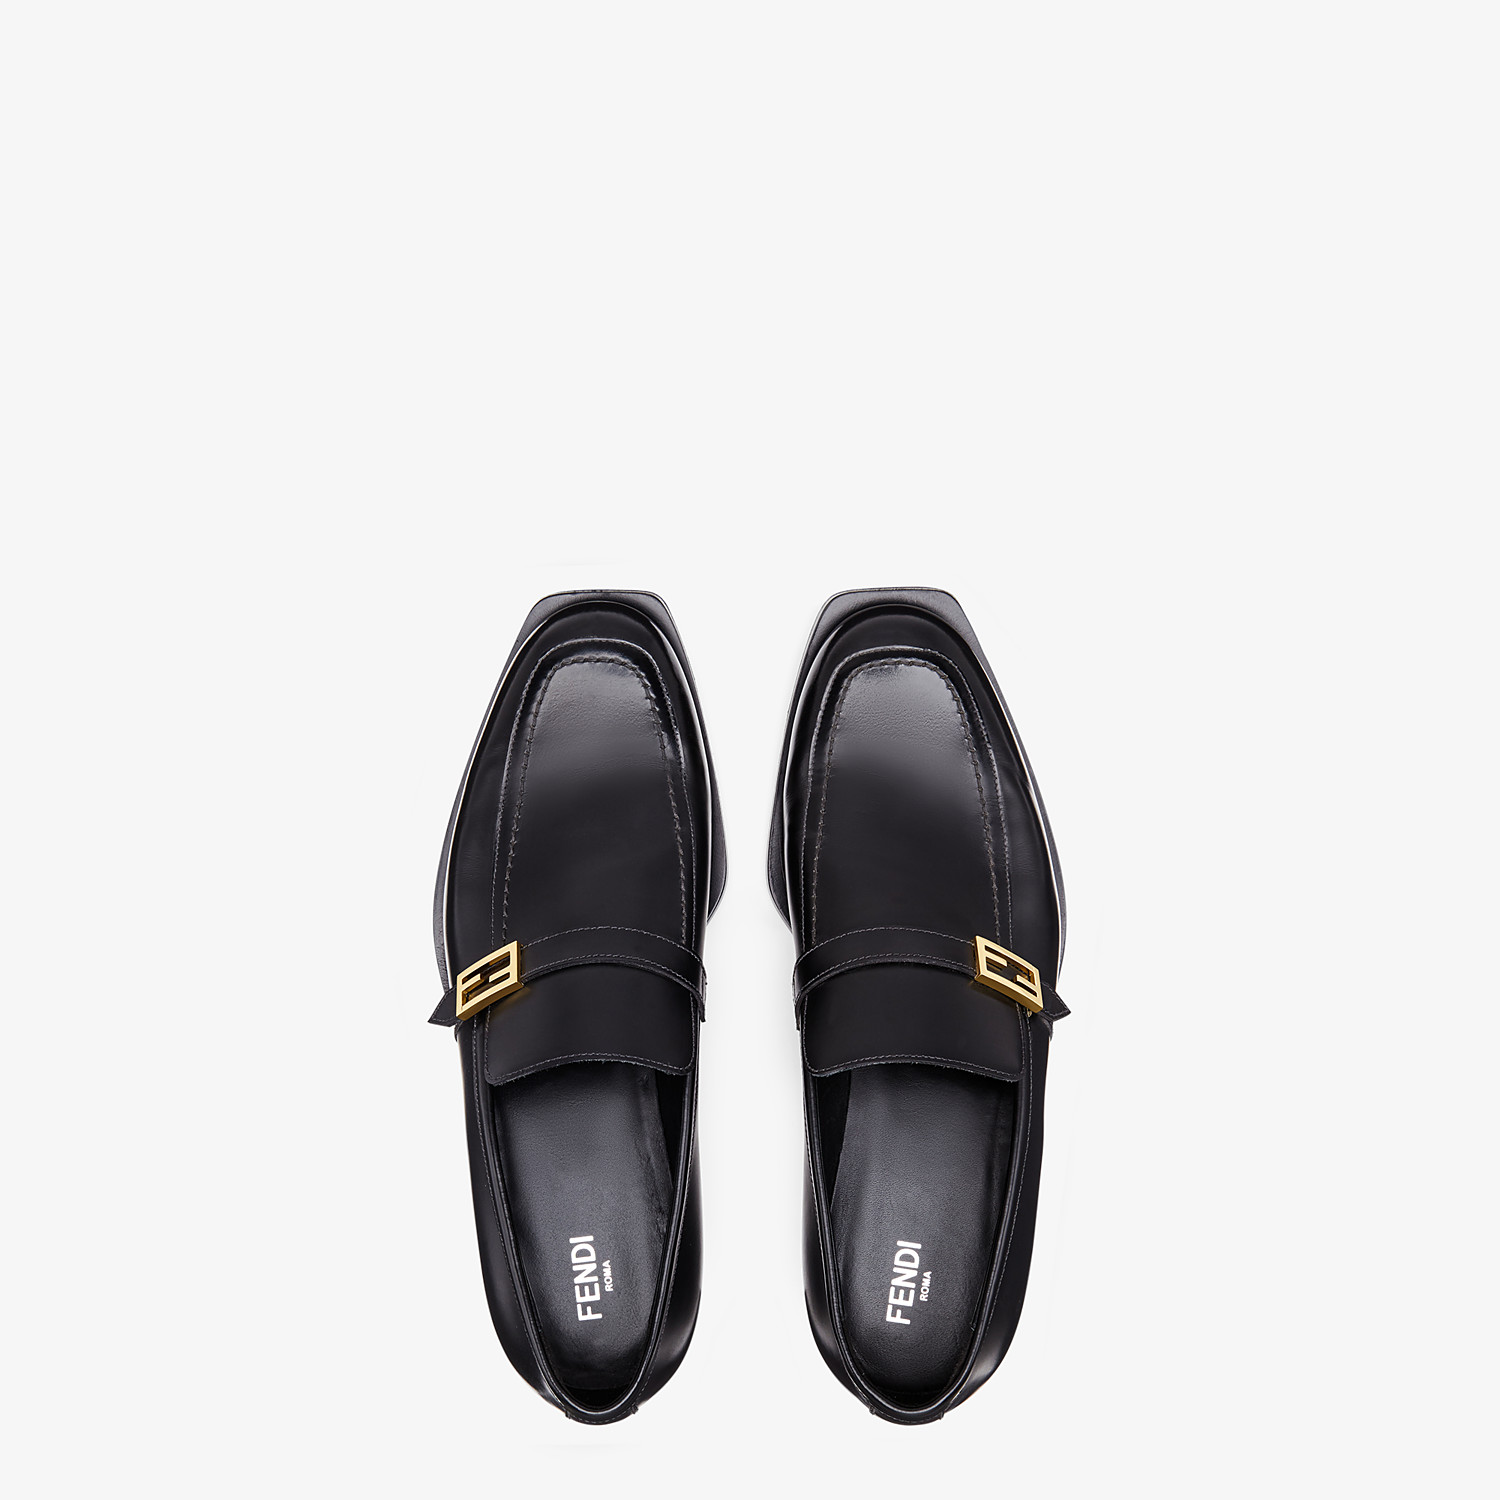 FENDI LOAFERS - Black leather loafers - view 4 detail